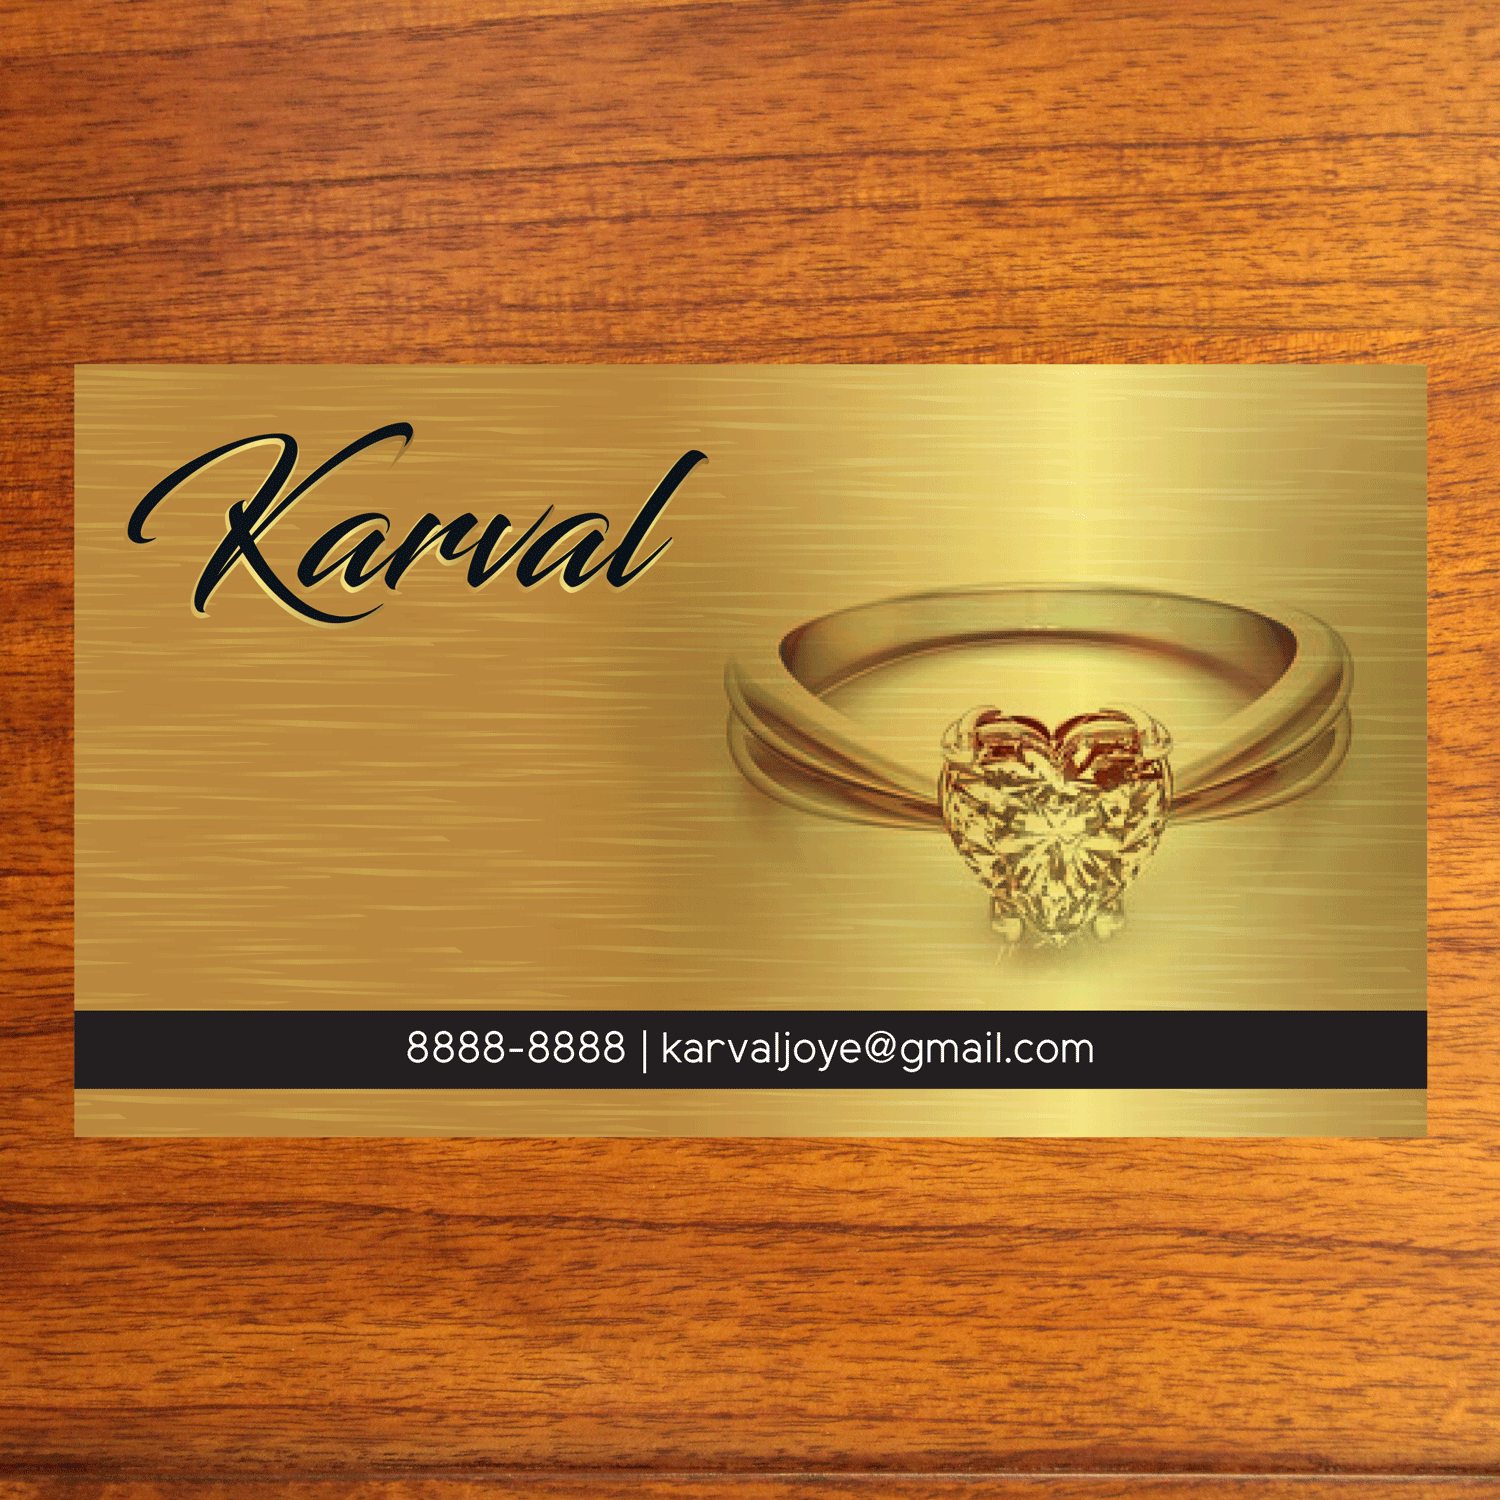 170 serious conservative jewelry store business card